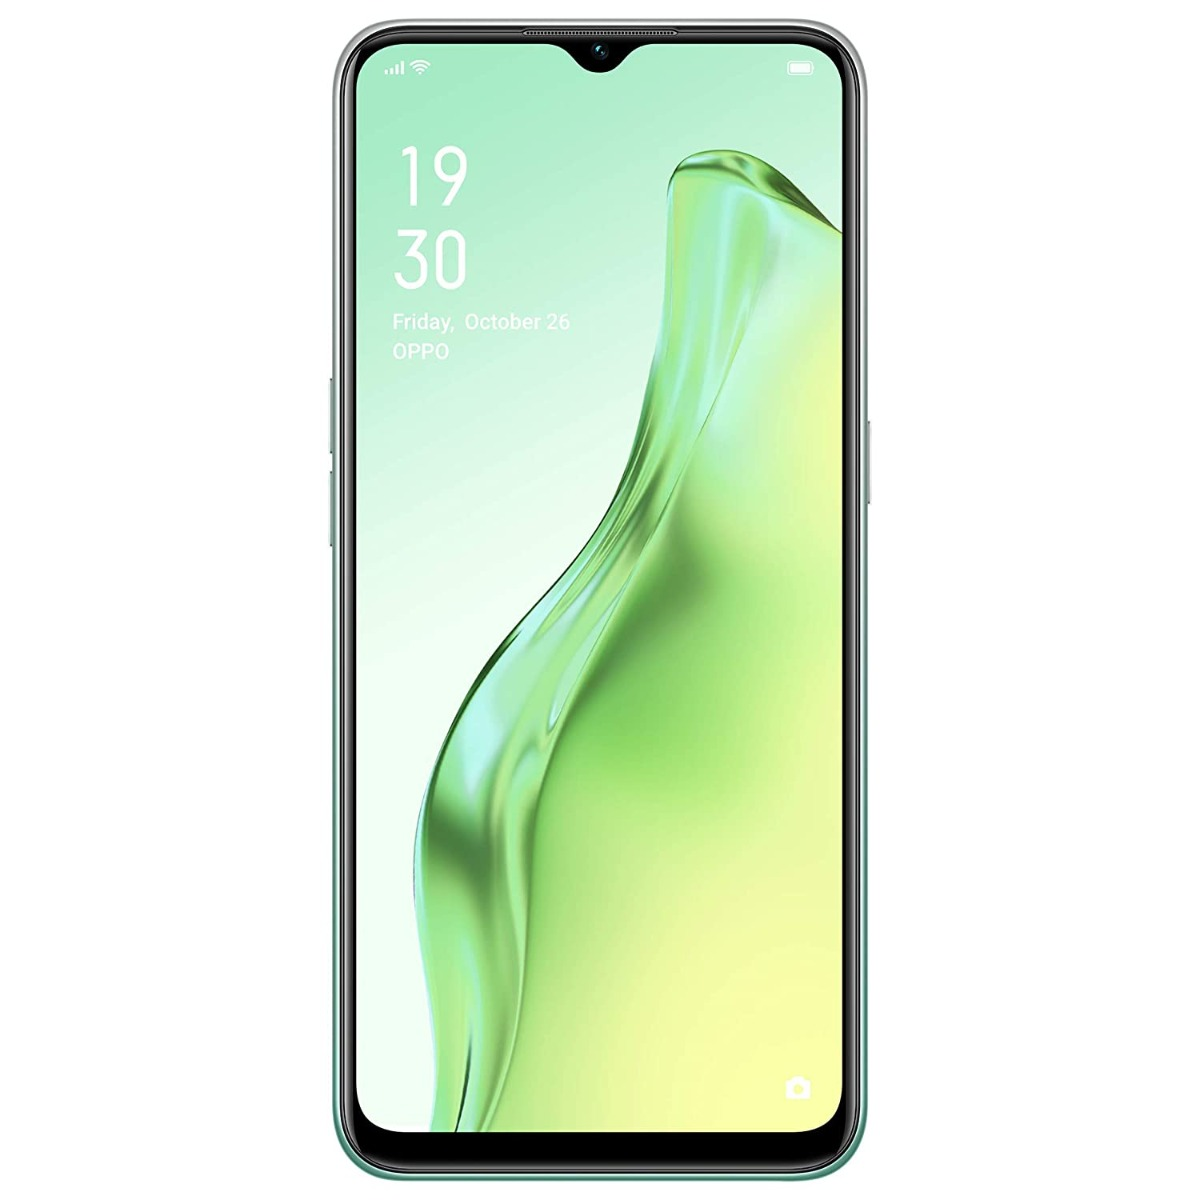 Oppo A31 (4GB RAM / 128GB ROM) With 5000 mAh Battery - White